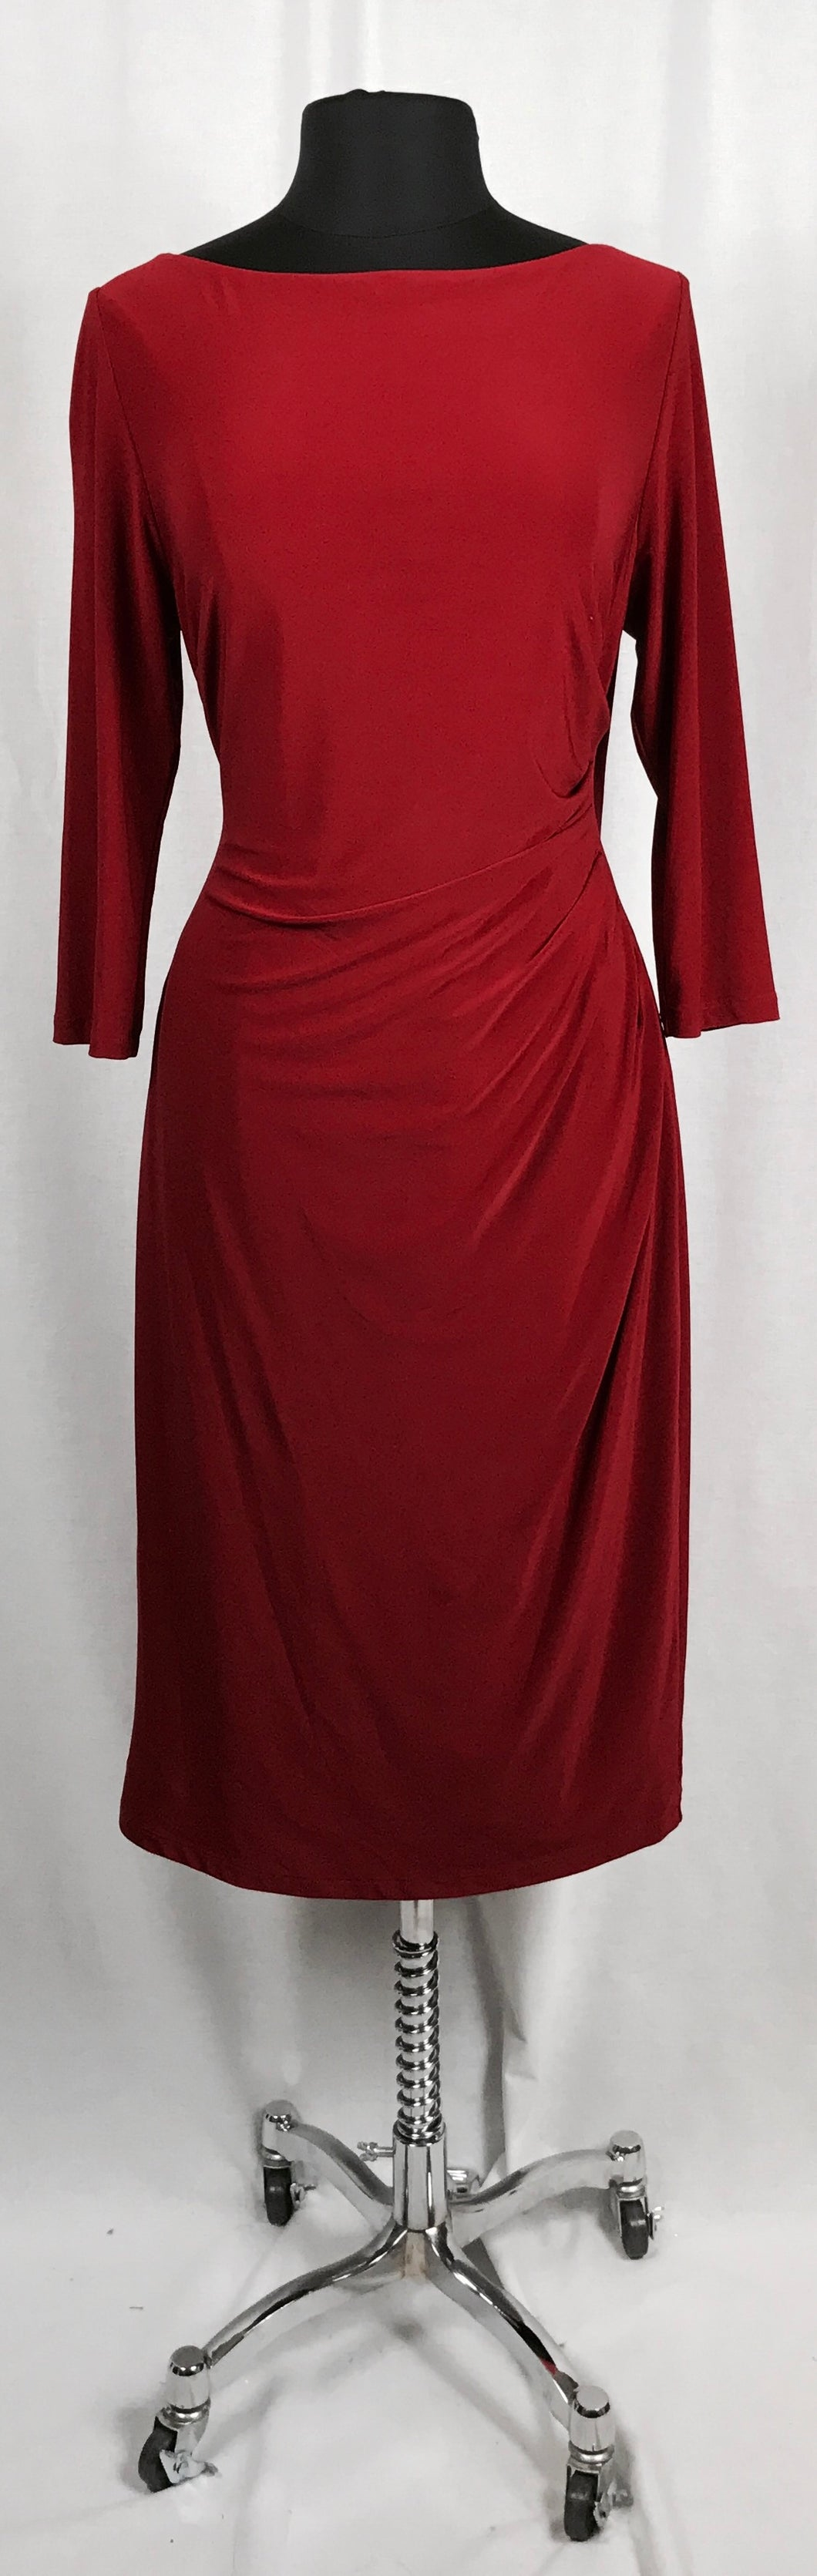 Ralph Lauren cocktail dress, Red